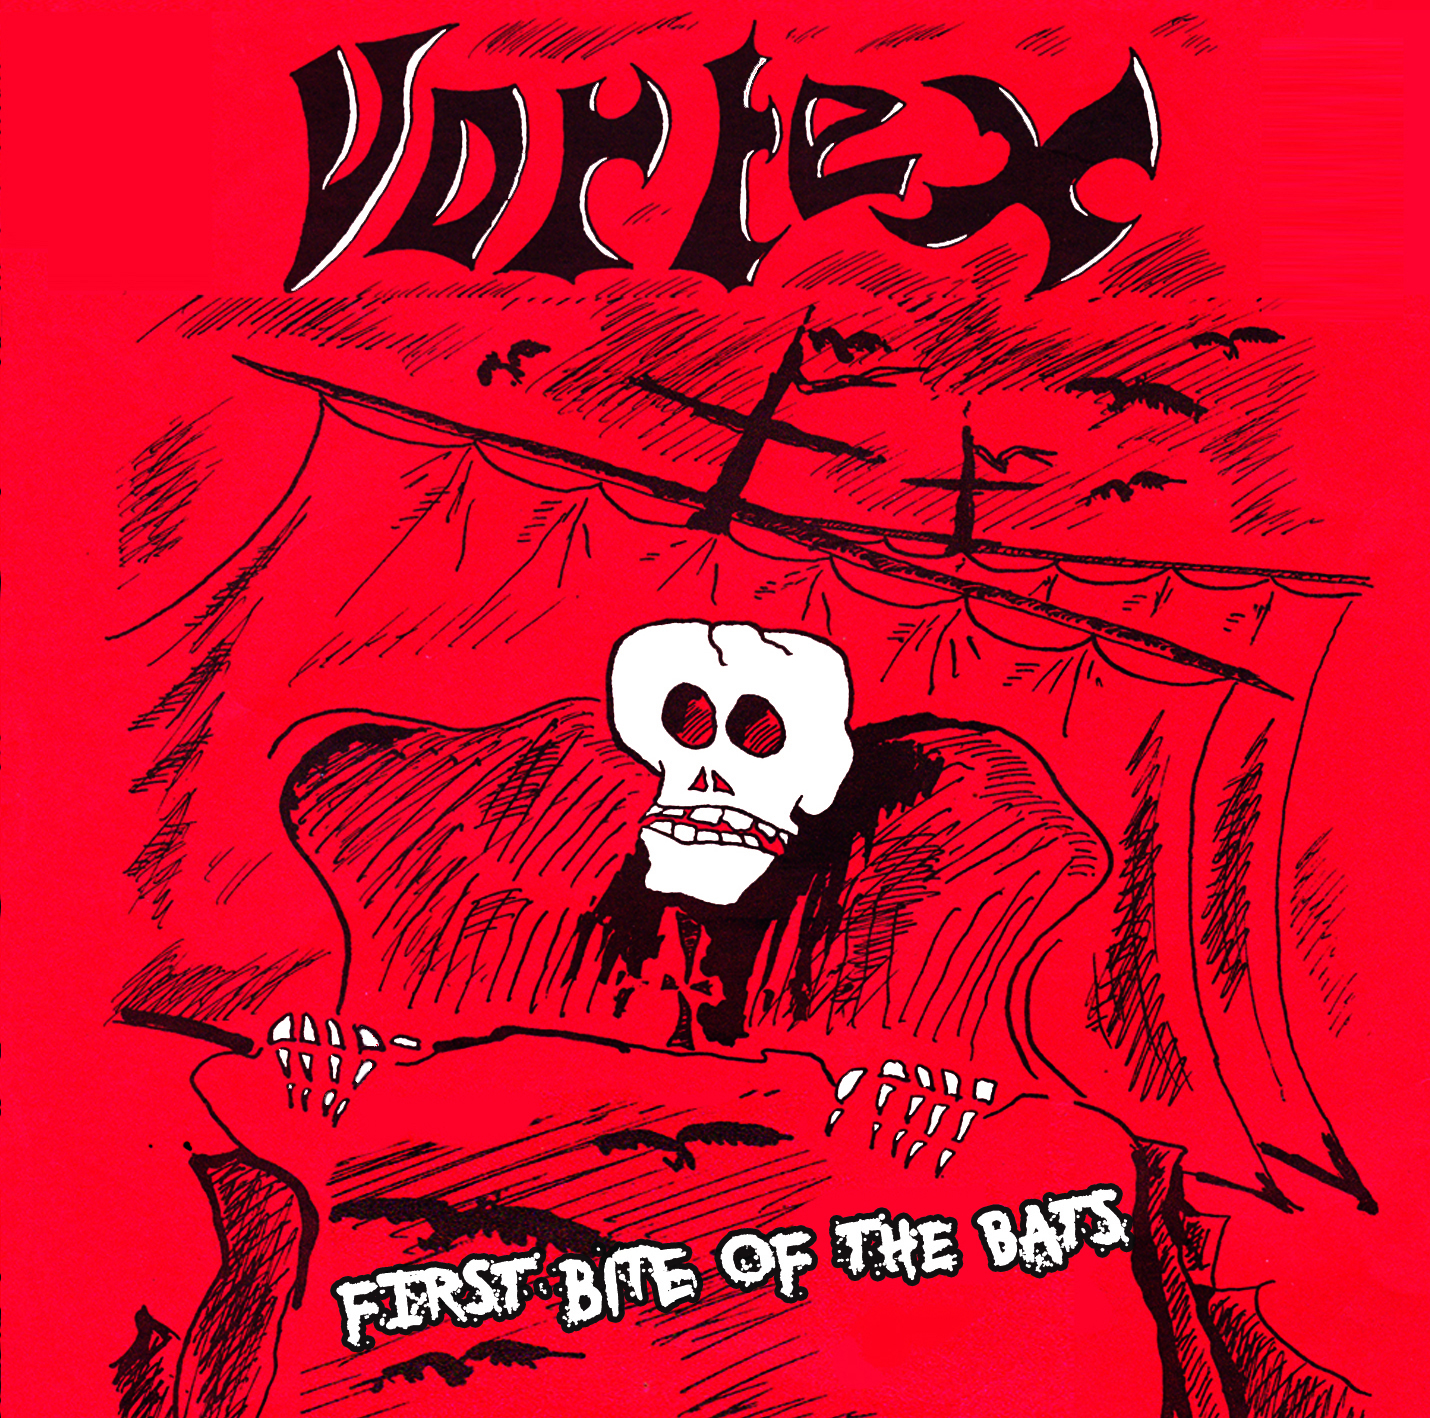 Vortex - first bite of the bat